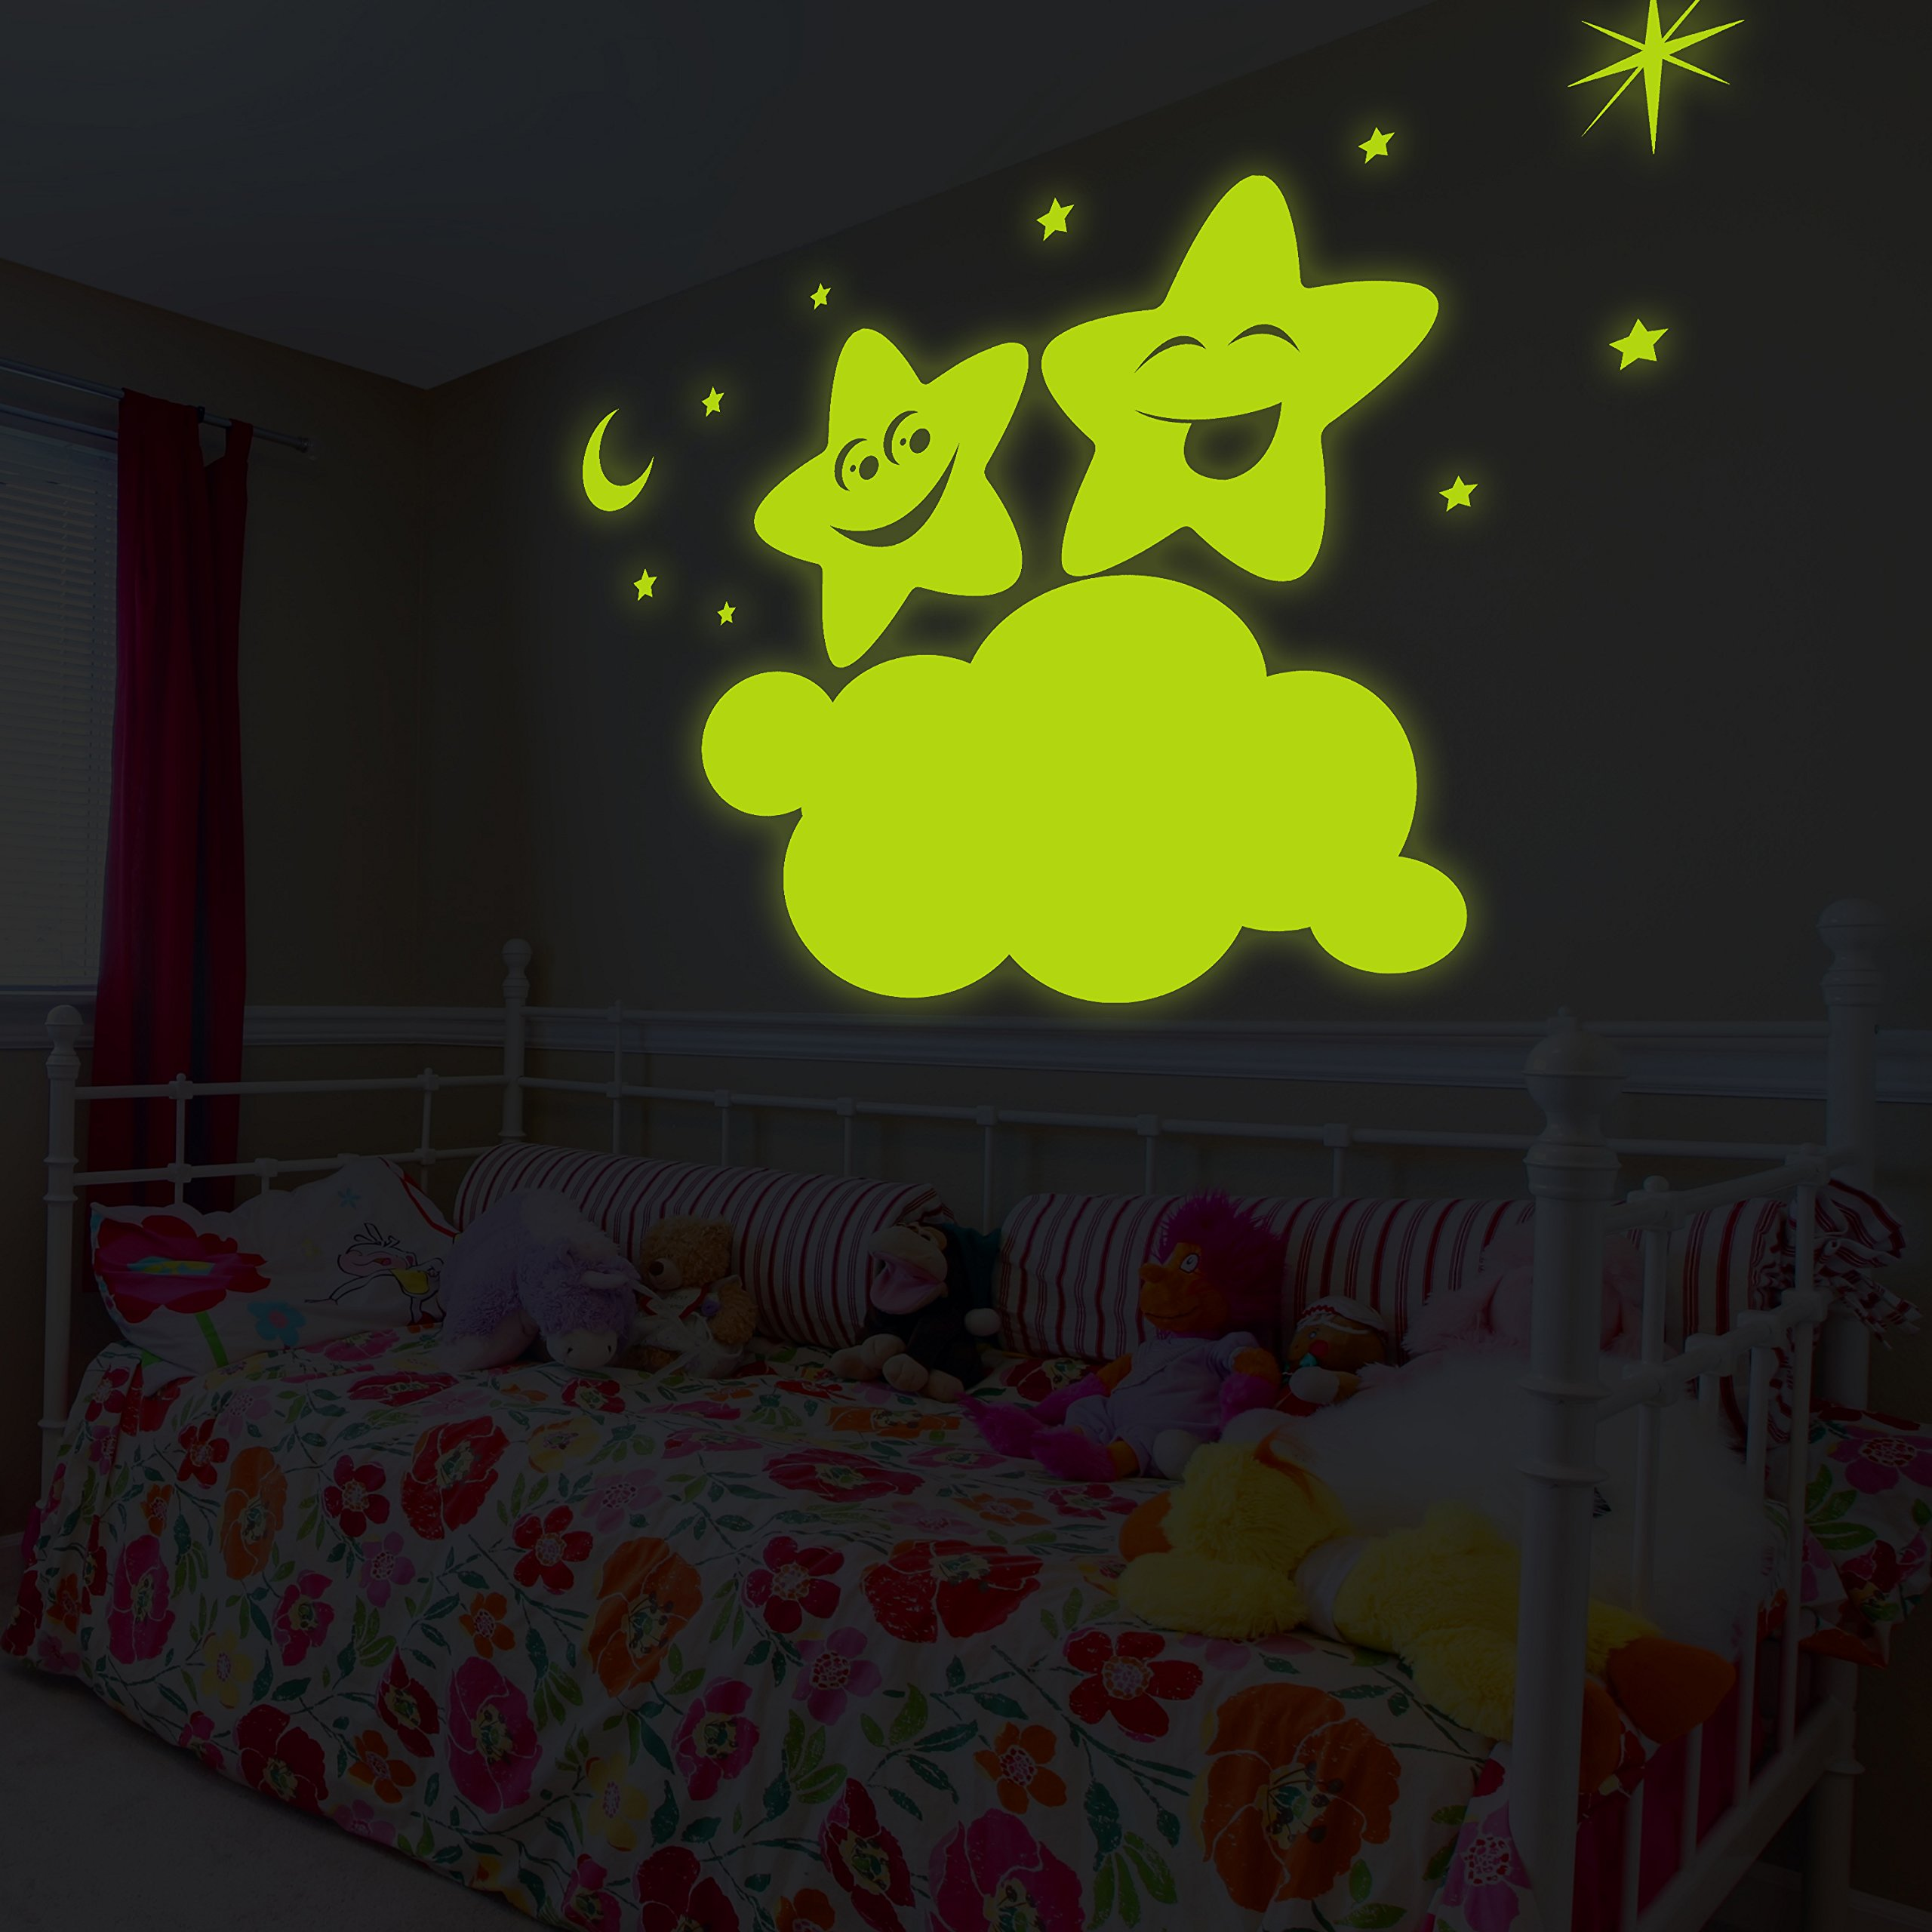 ( 63'' x 42'' ) Glowing Vinyl Wall Decal Twin Stars on Cloud / Glow in the Dark Sticker / Happy Star Luminescent Mural Kids, Baby Room + Free Decal Gift!